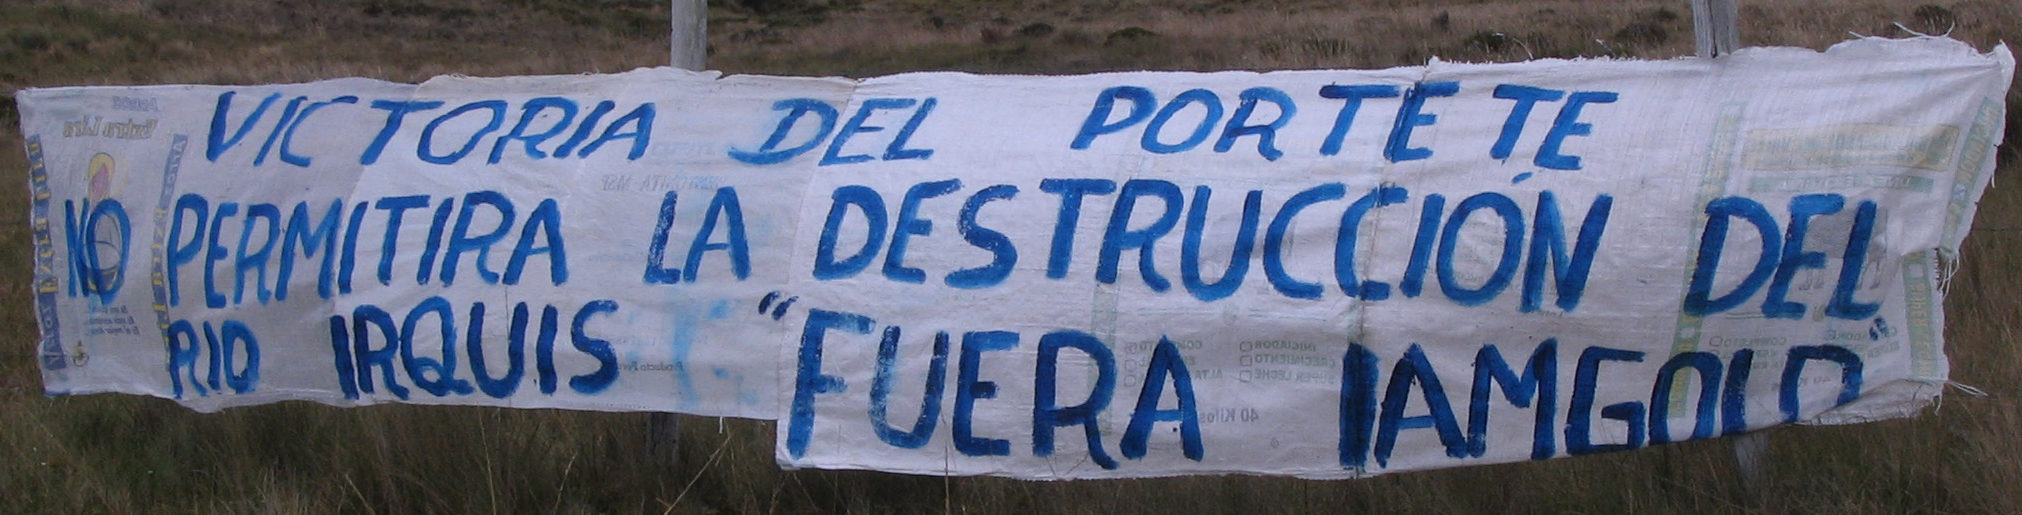 Banner demands Canadian company IAMGOLD abandon their gold and silver project in the high-altitude páramo ecosystem - known as Kimsacocha - at the headwaters of the Irquis River, upstream of the community of Victoria del Portete, county of Cuenca, Azuay, Ecuador.